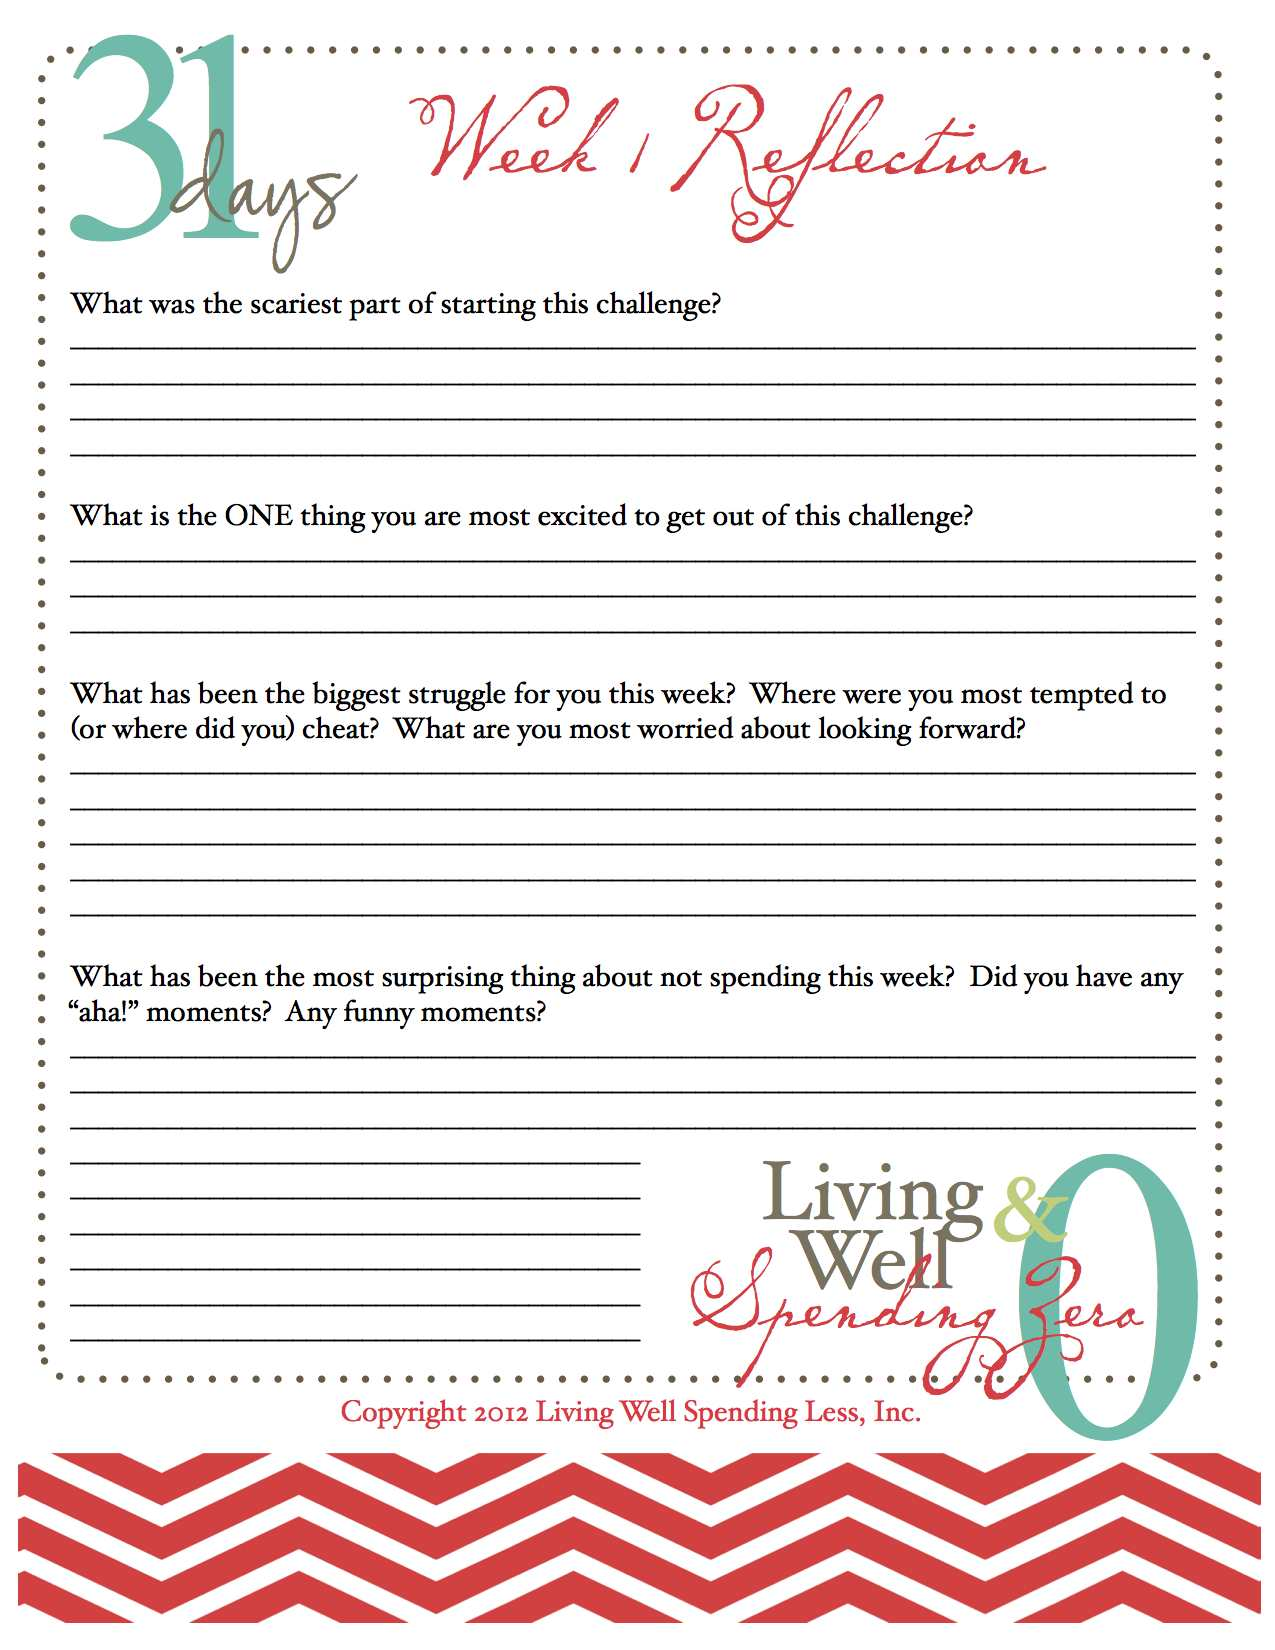 Uncategorized Reflections Worksheet week 1 reflection day 7 living well spending